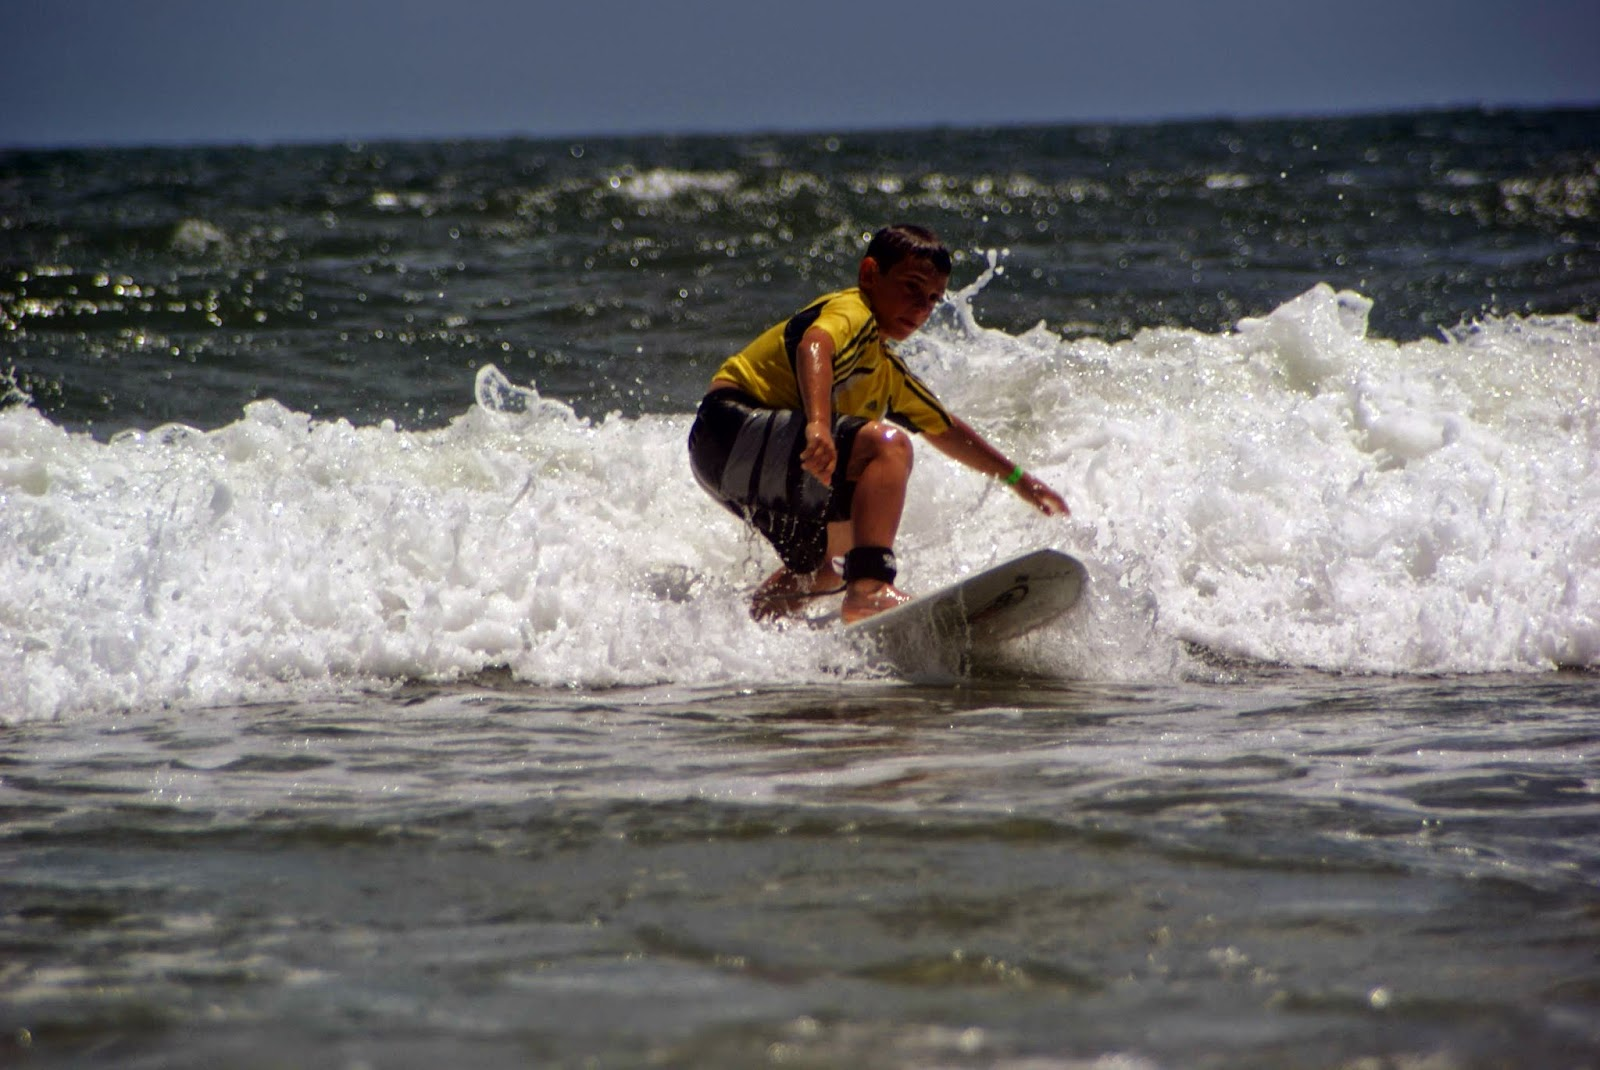 ddb0d4c05b Surfing Lessons with Tom Allen (404) 229-4223  Learn to surf on your ...